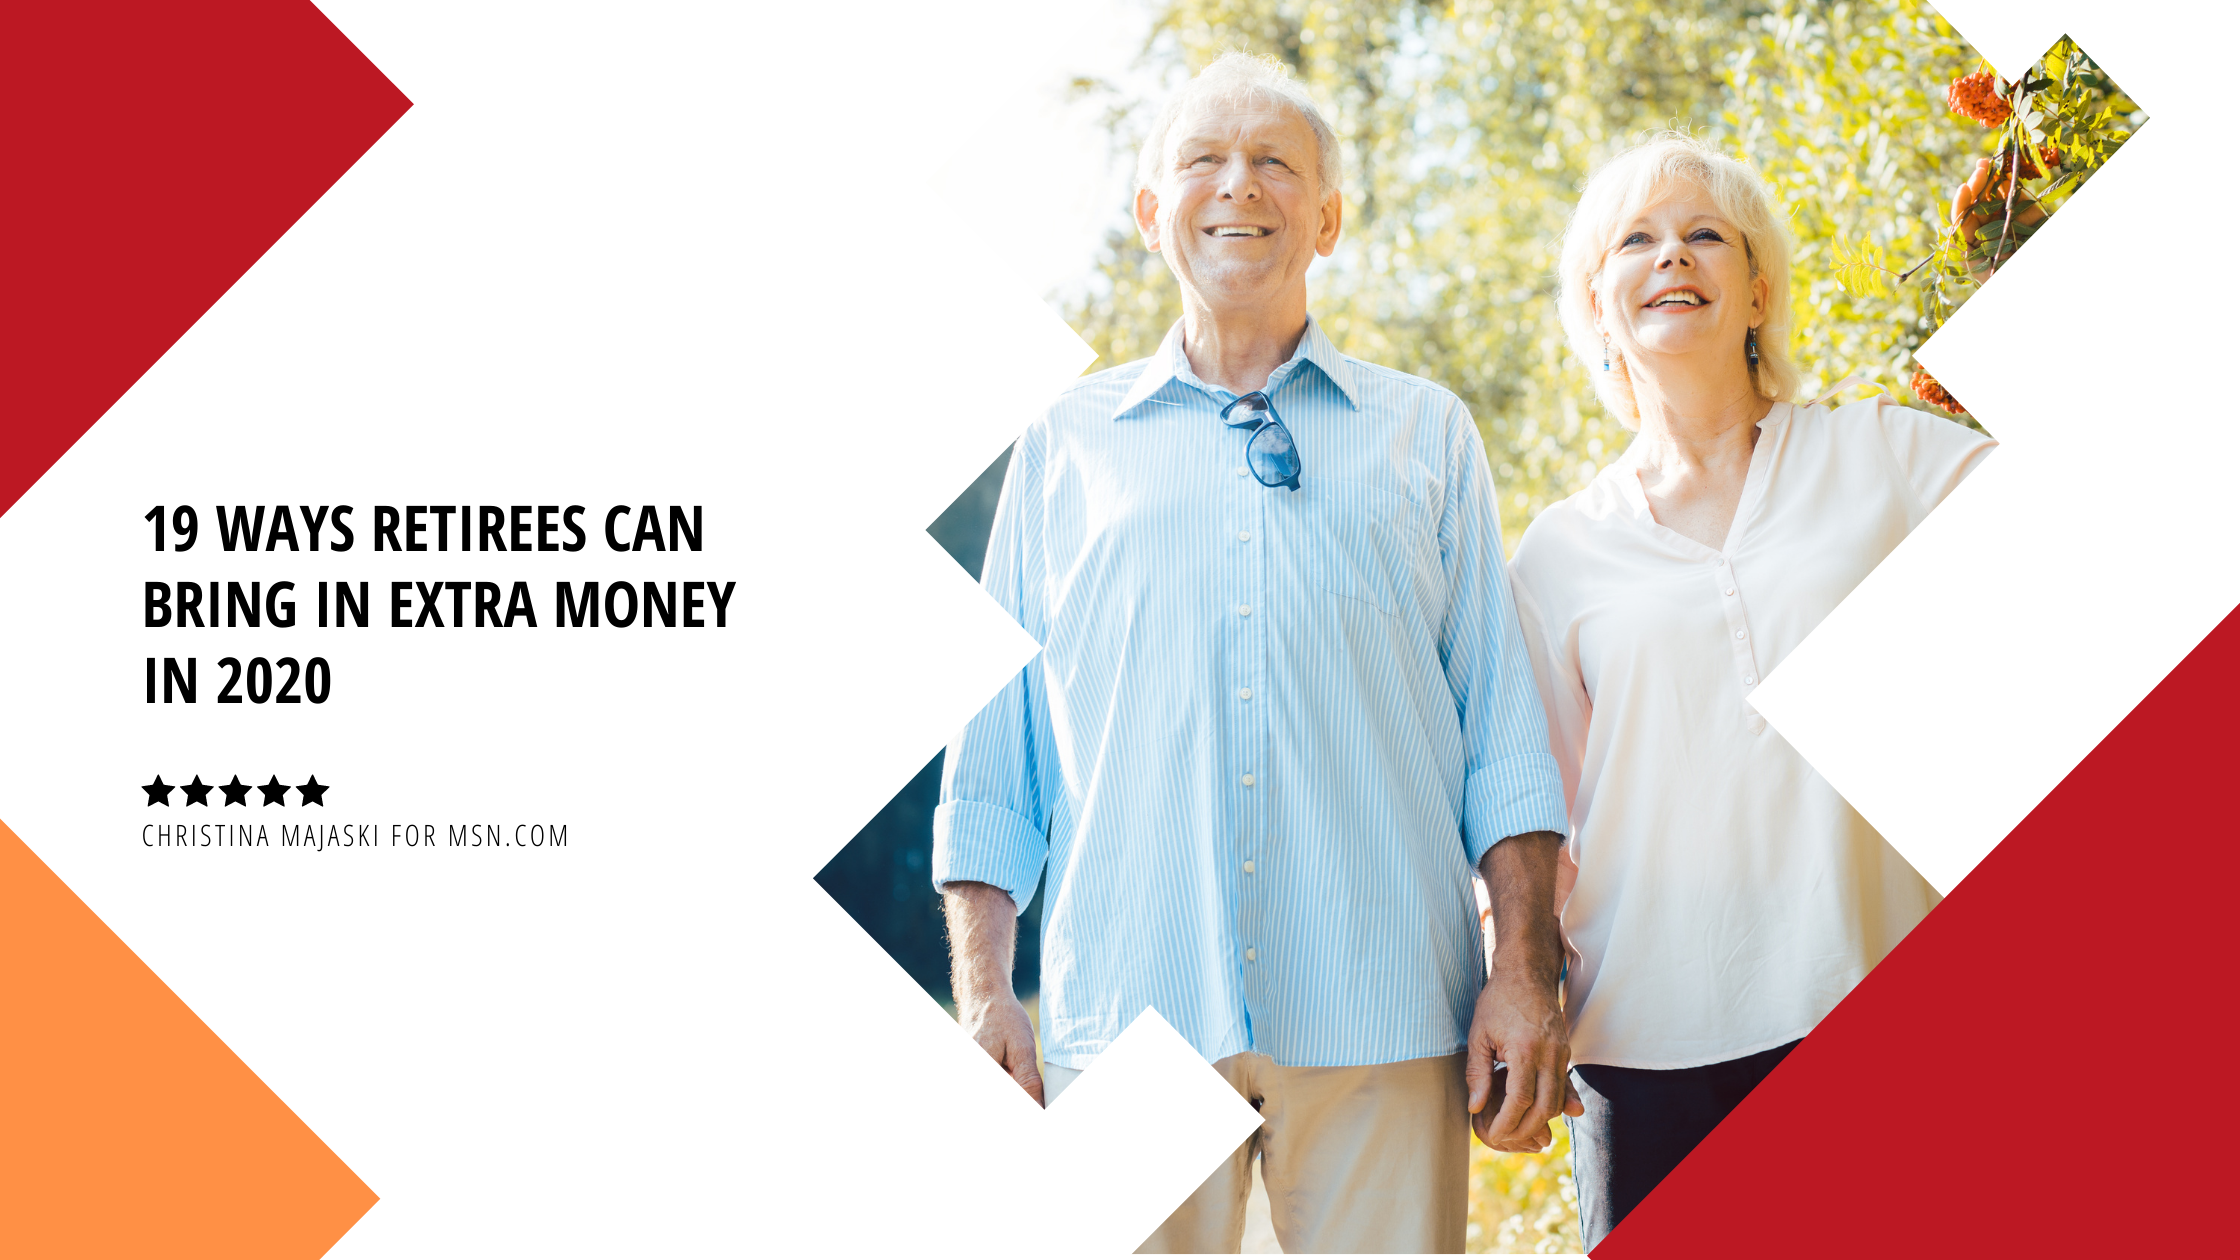 19 Ways Retirees Can Bring in Extra Money in 2020